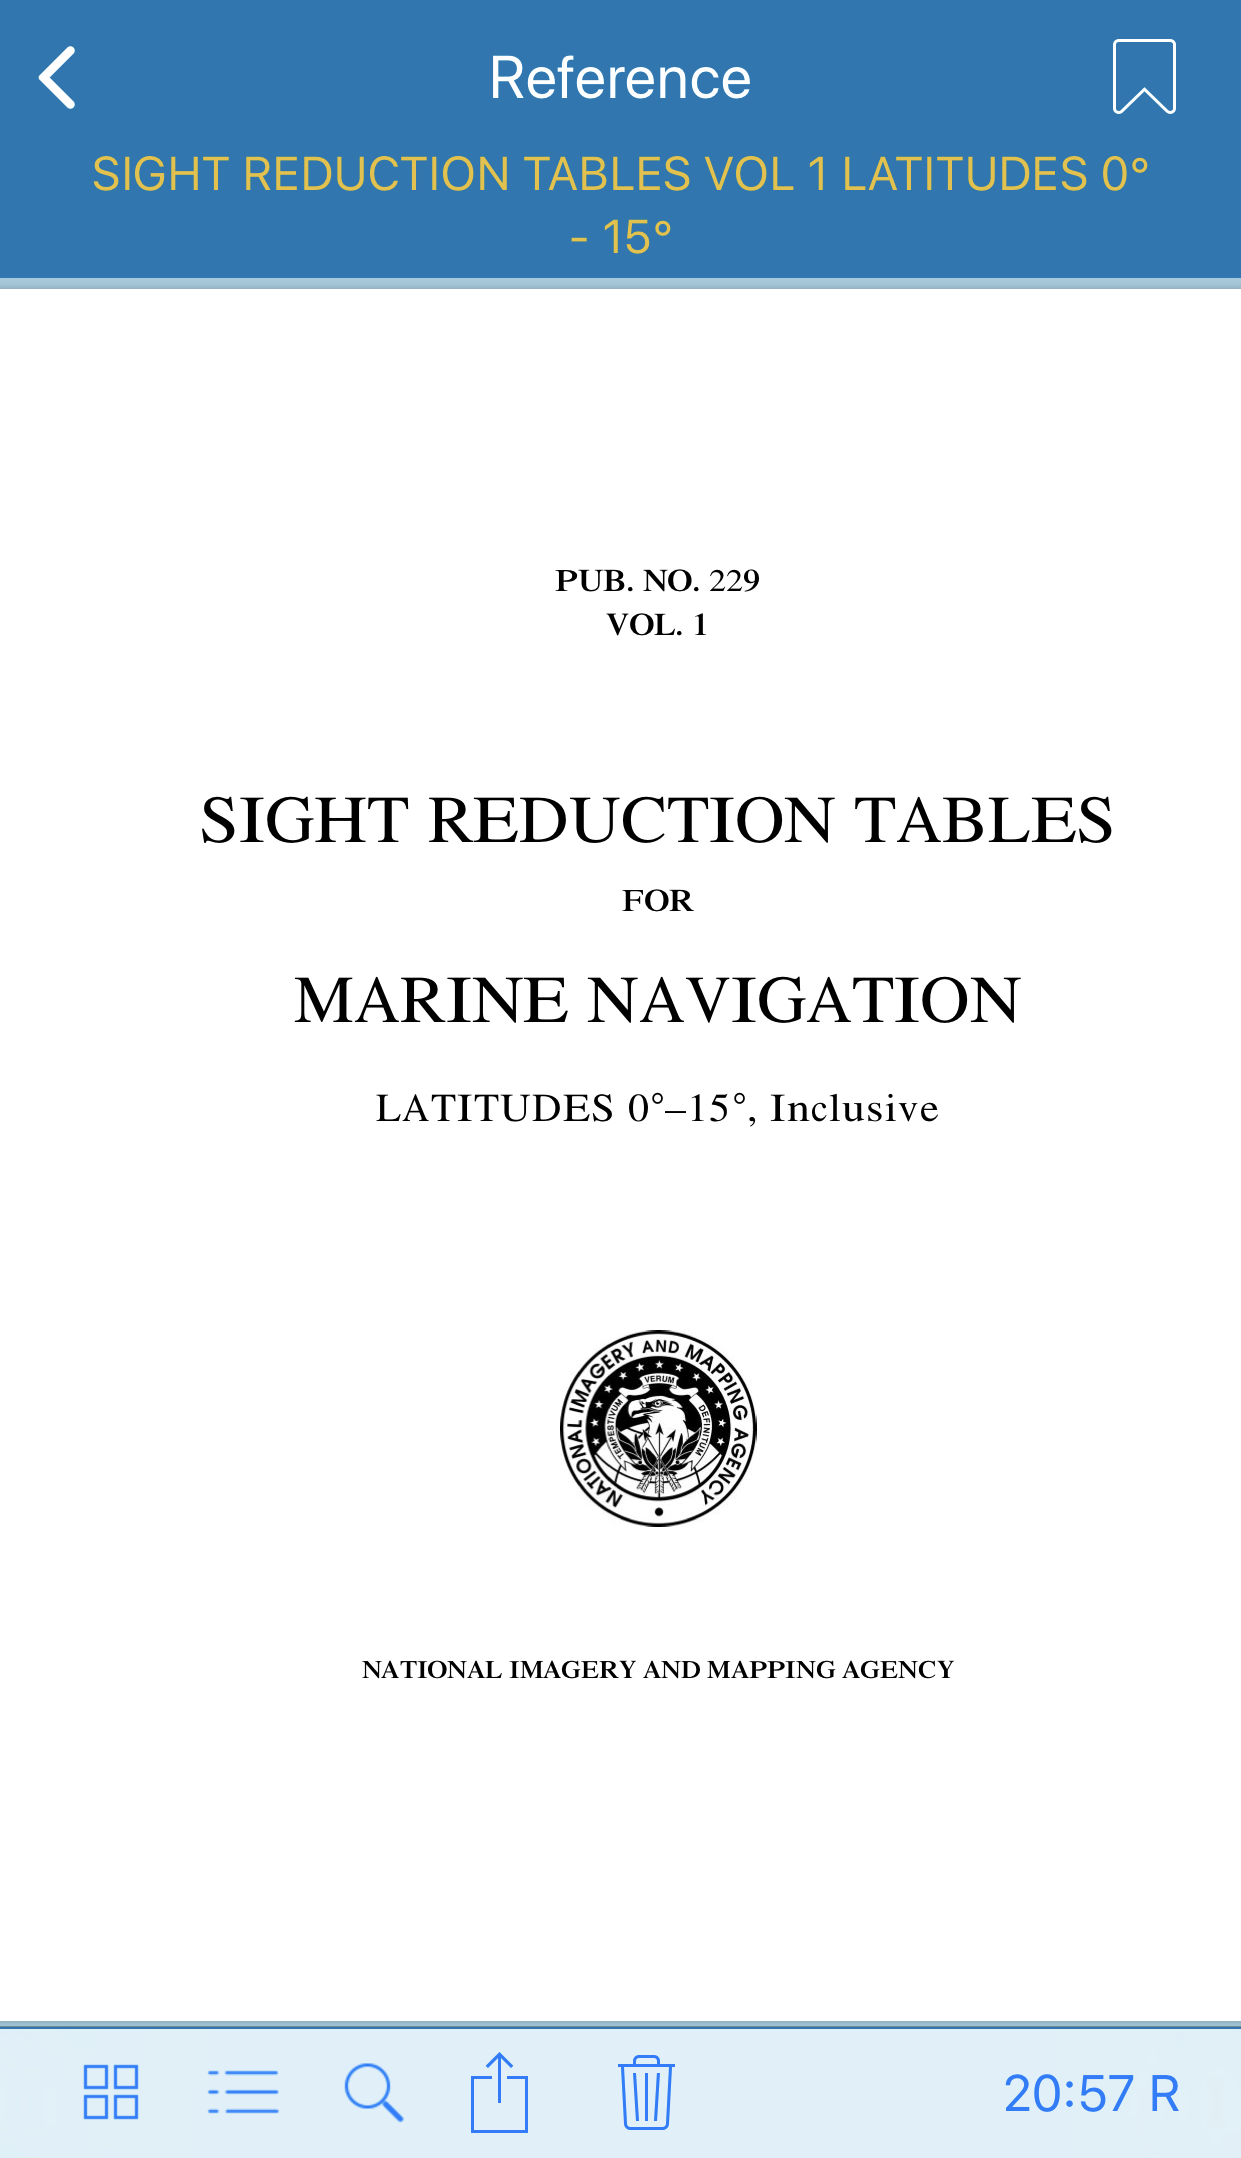 Sight Reduction Tables Reference